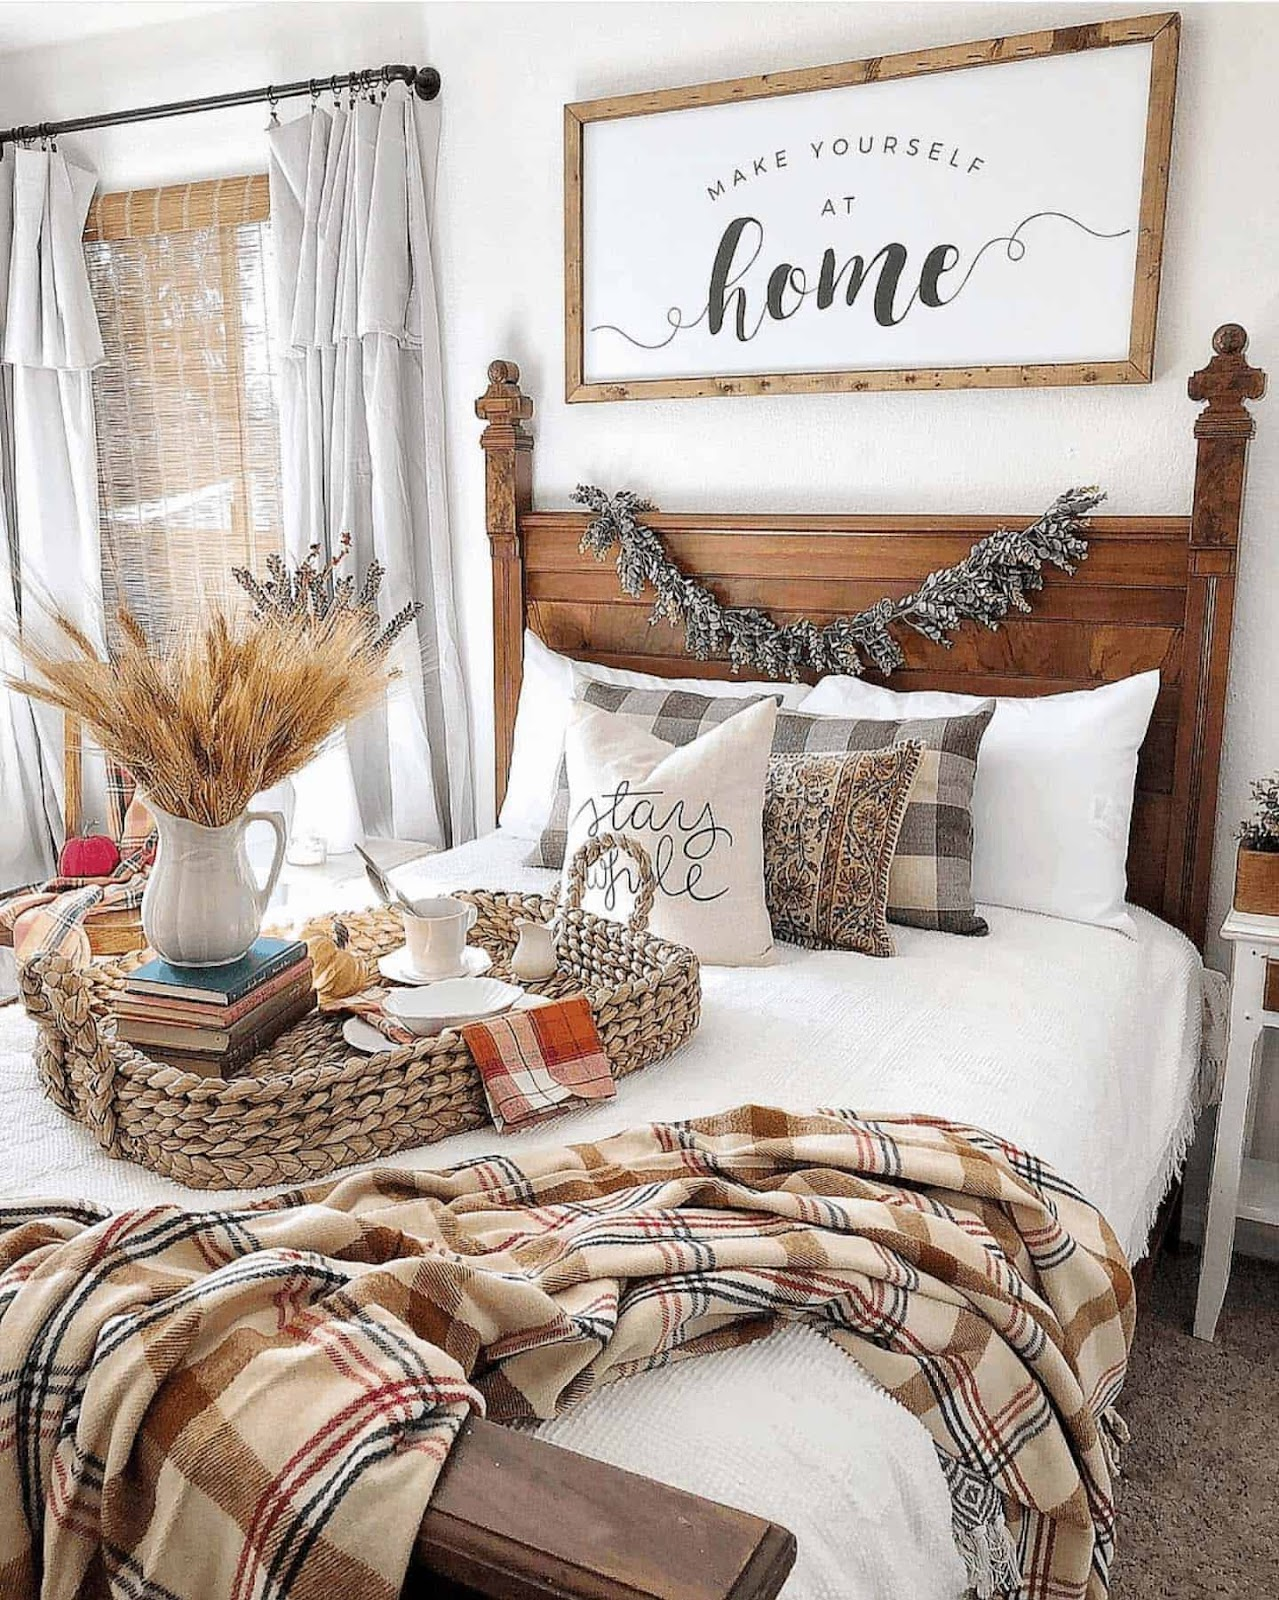 Fall bedroom decor bedroom setting with beautiful fall colors and cozy blankets.